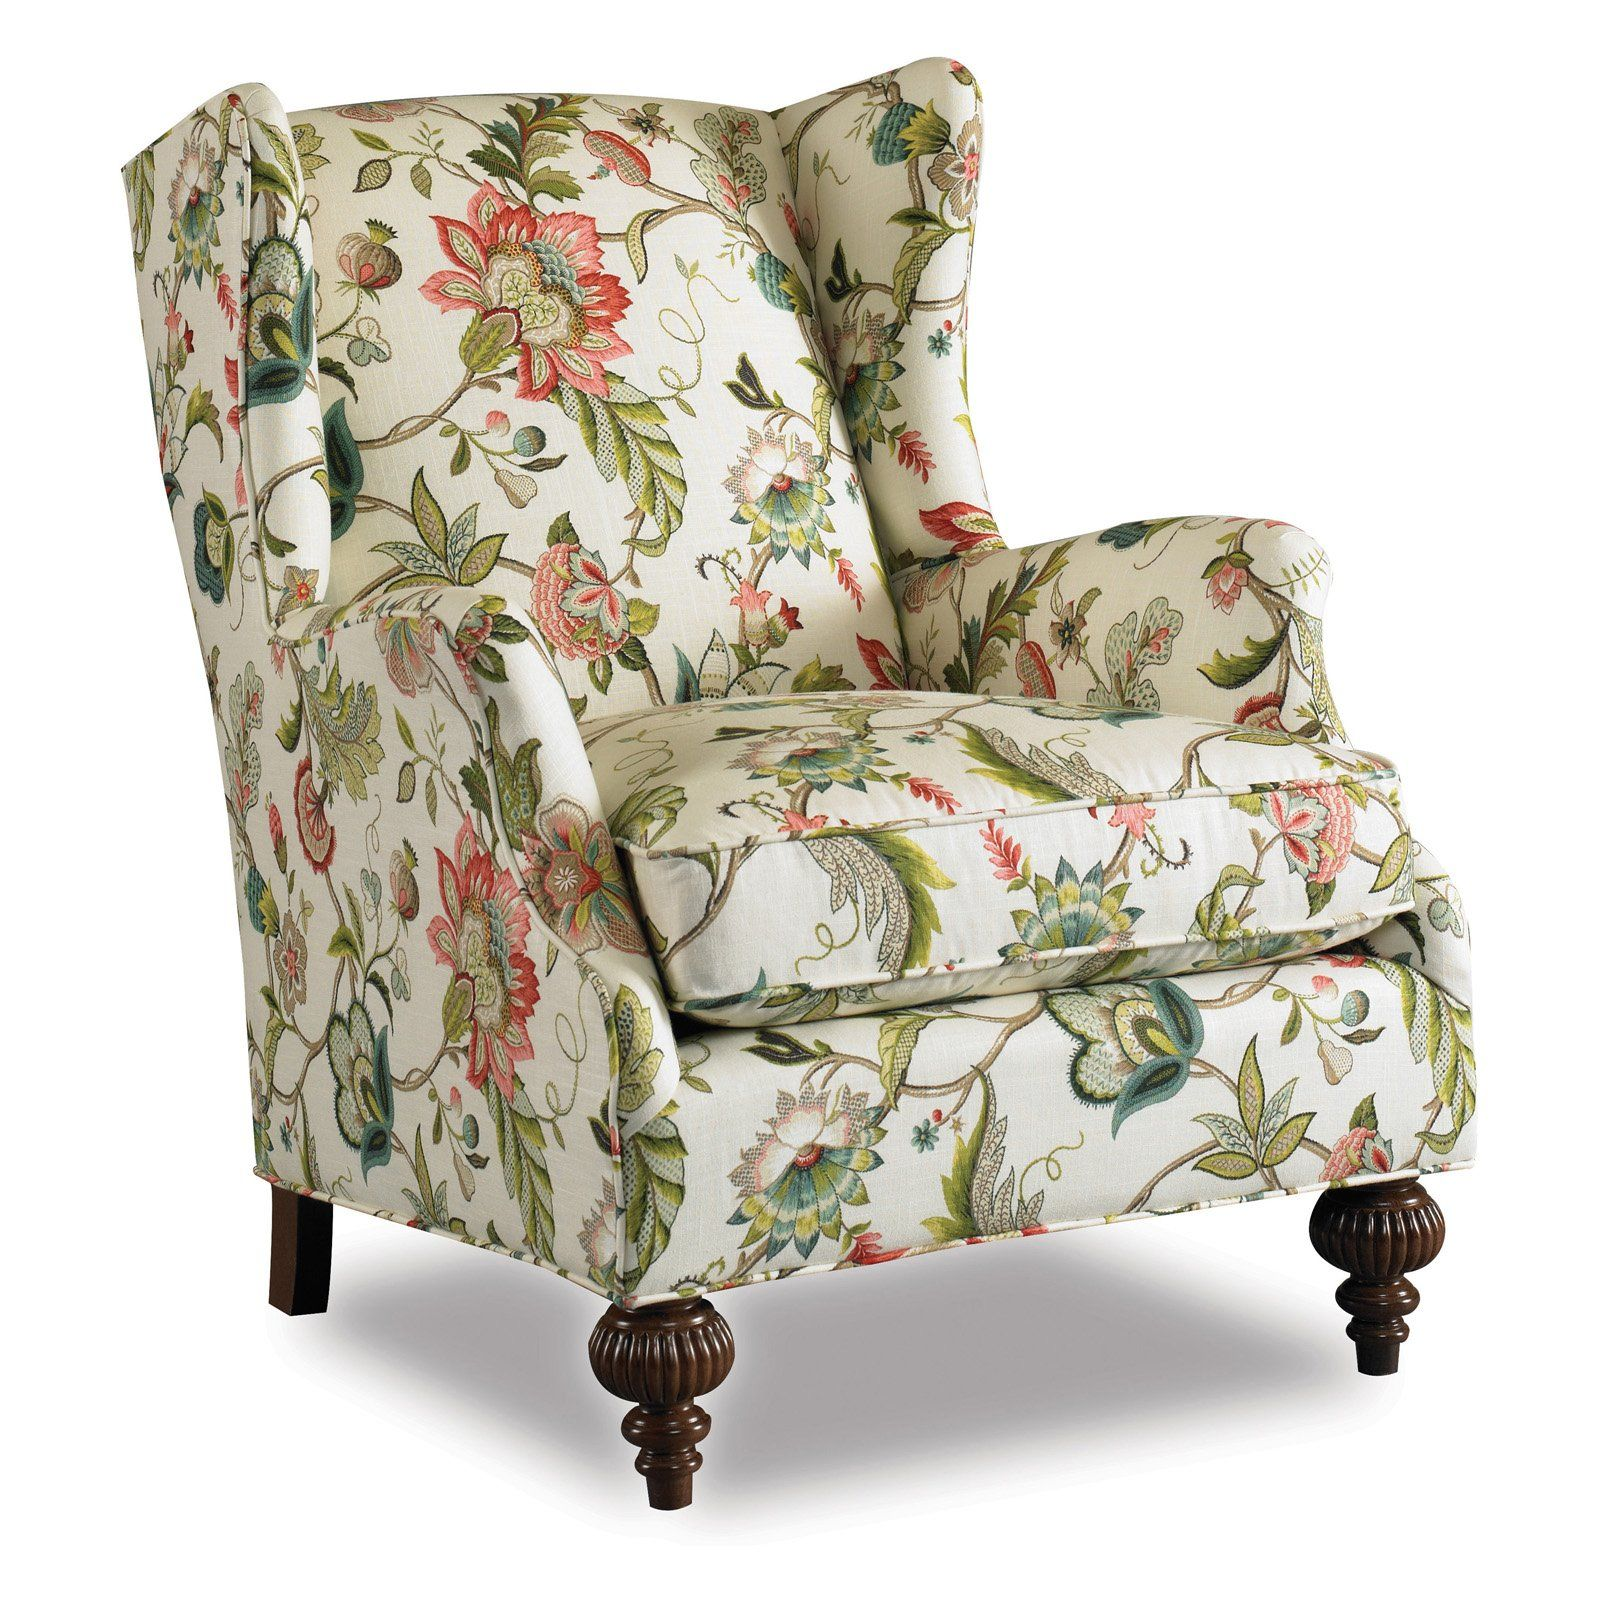 Botanical Print Upholstery Fabric Chair Abington Wing Chair